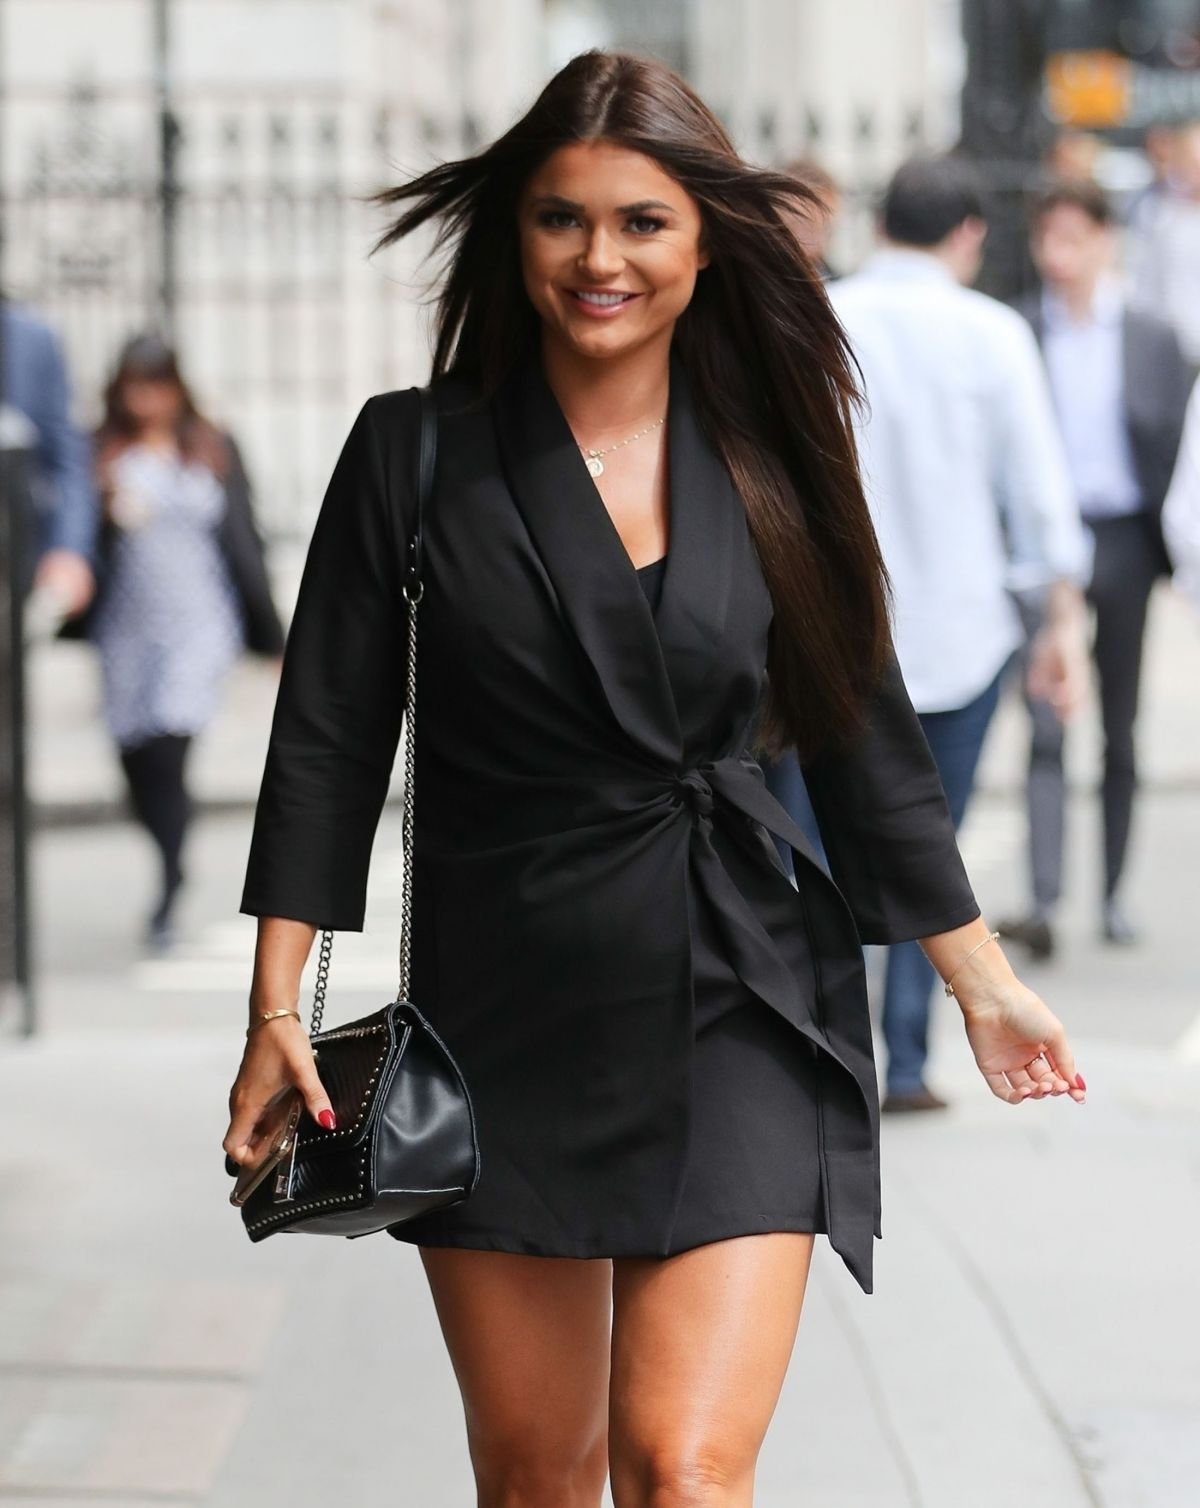 India Reynolds Arrives At Cecconi S Restaurant In London